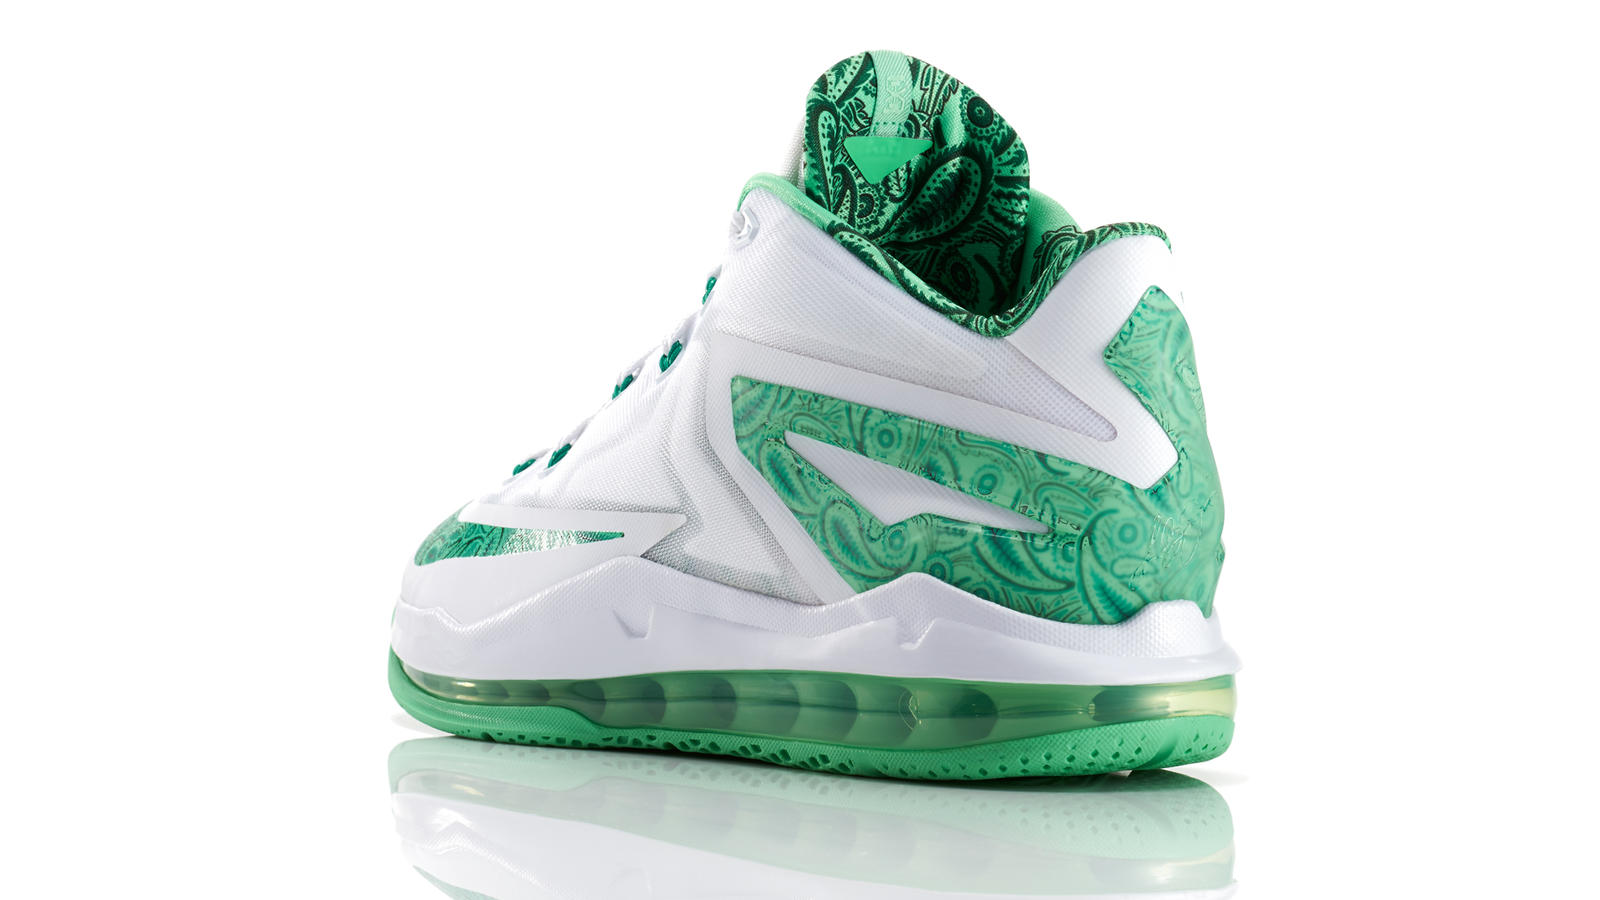 lebron_11_low_easter_100_3qtr_back_low_0101_fb